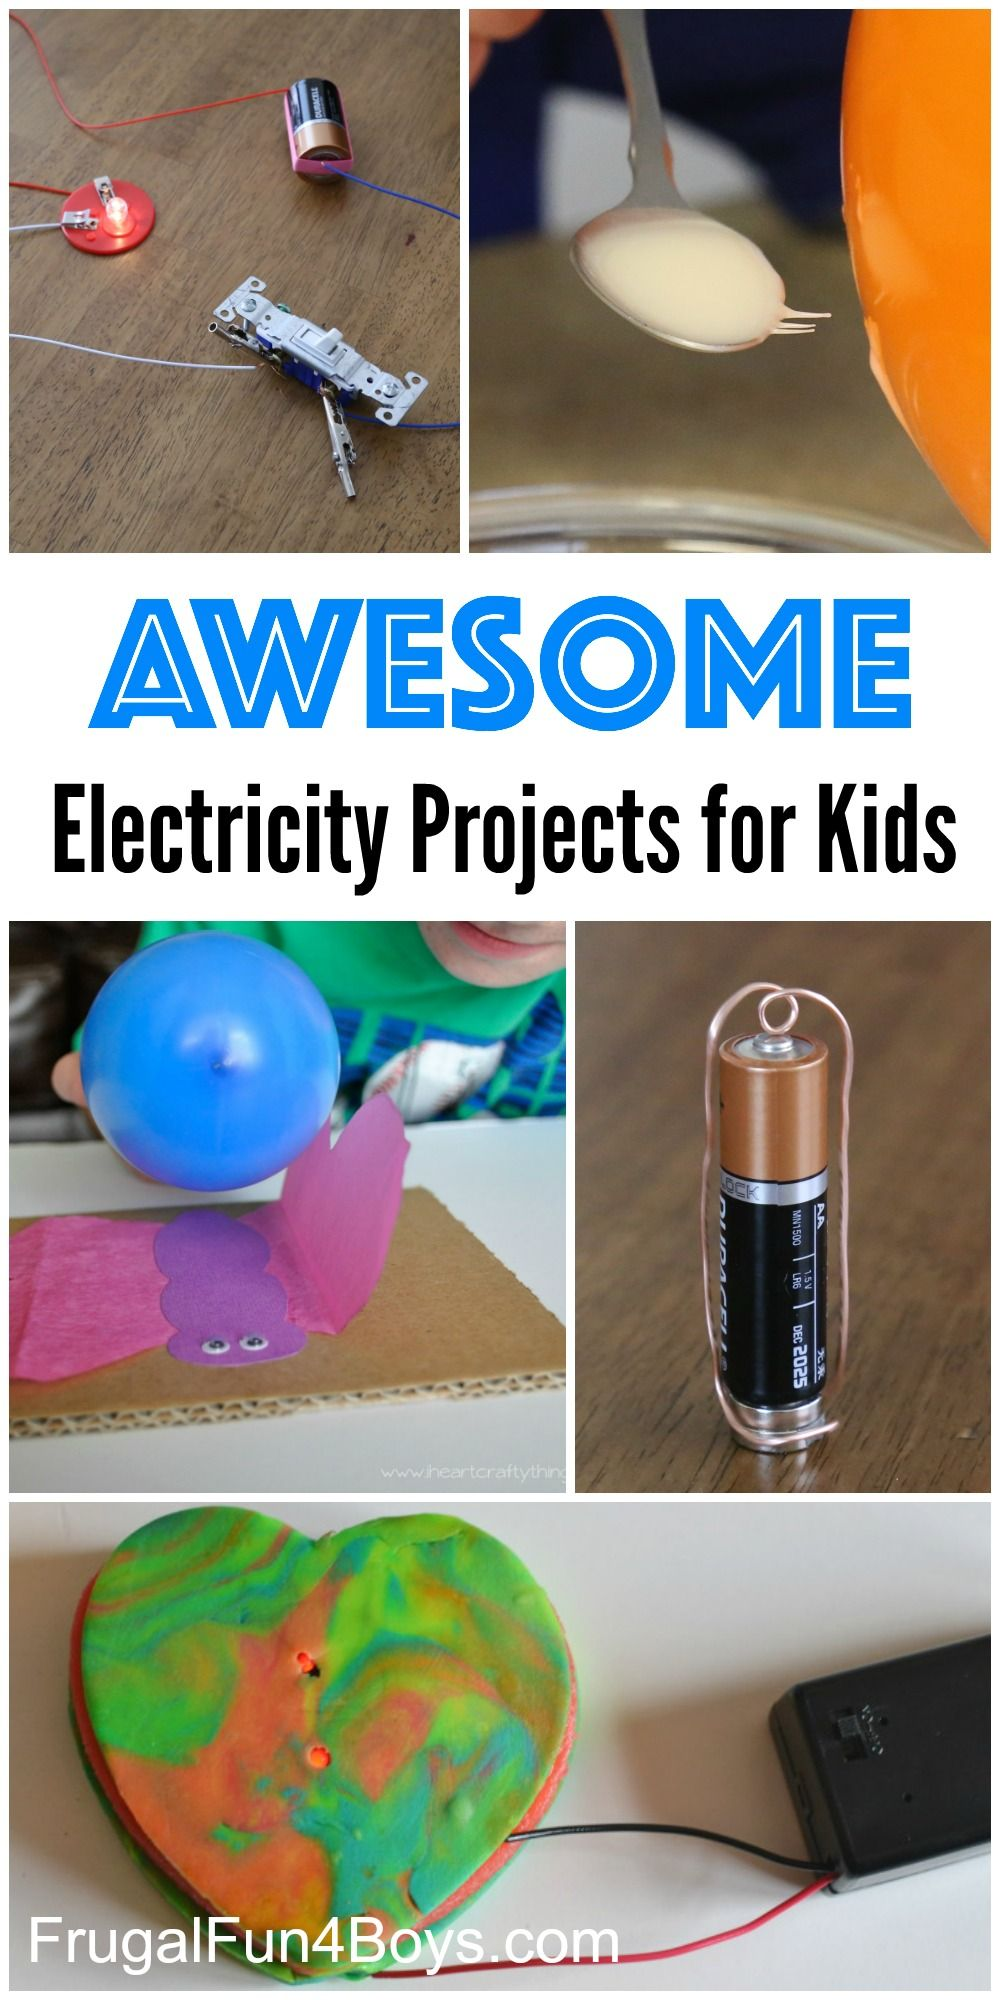 10 Awesome Electricity Projects For Kids Frugal Fun Boys And Hobby Electronics Student Circuits Kits Simple Static Demonstrations Build A Circuit Show How Switch Works Electromagnetism More